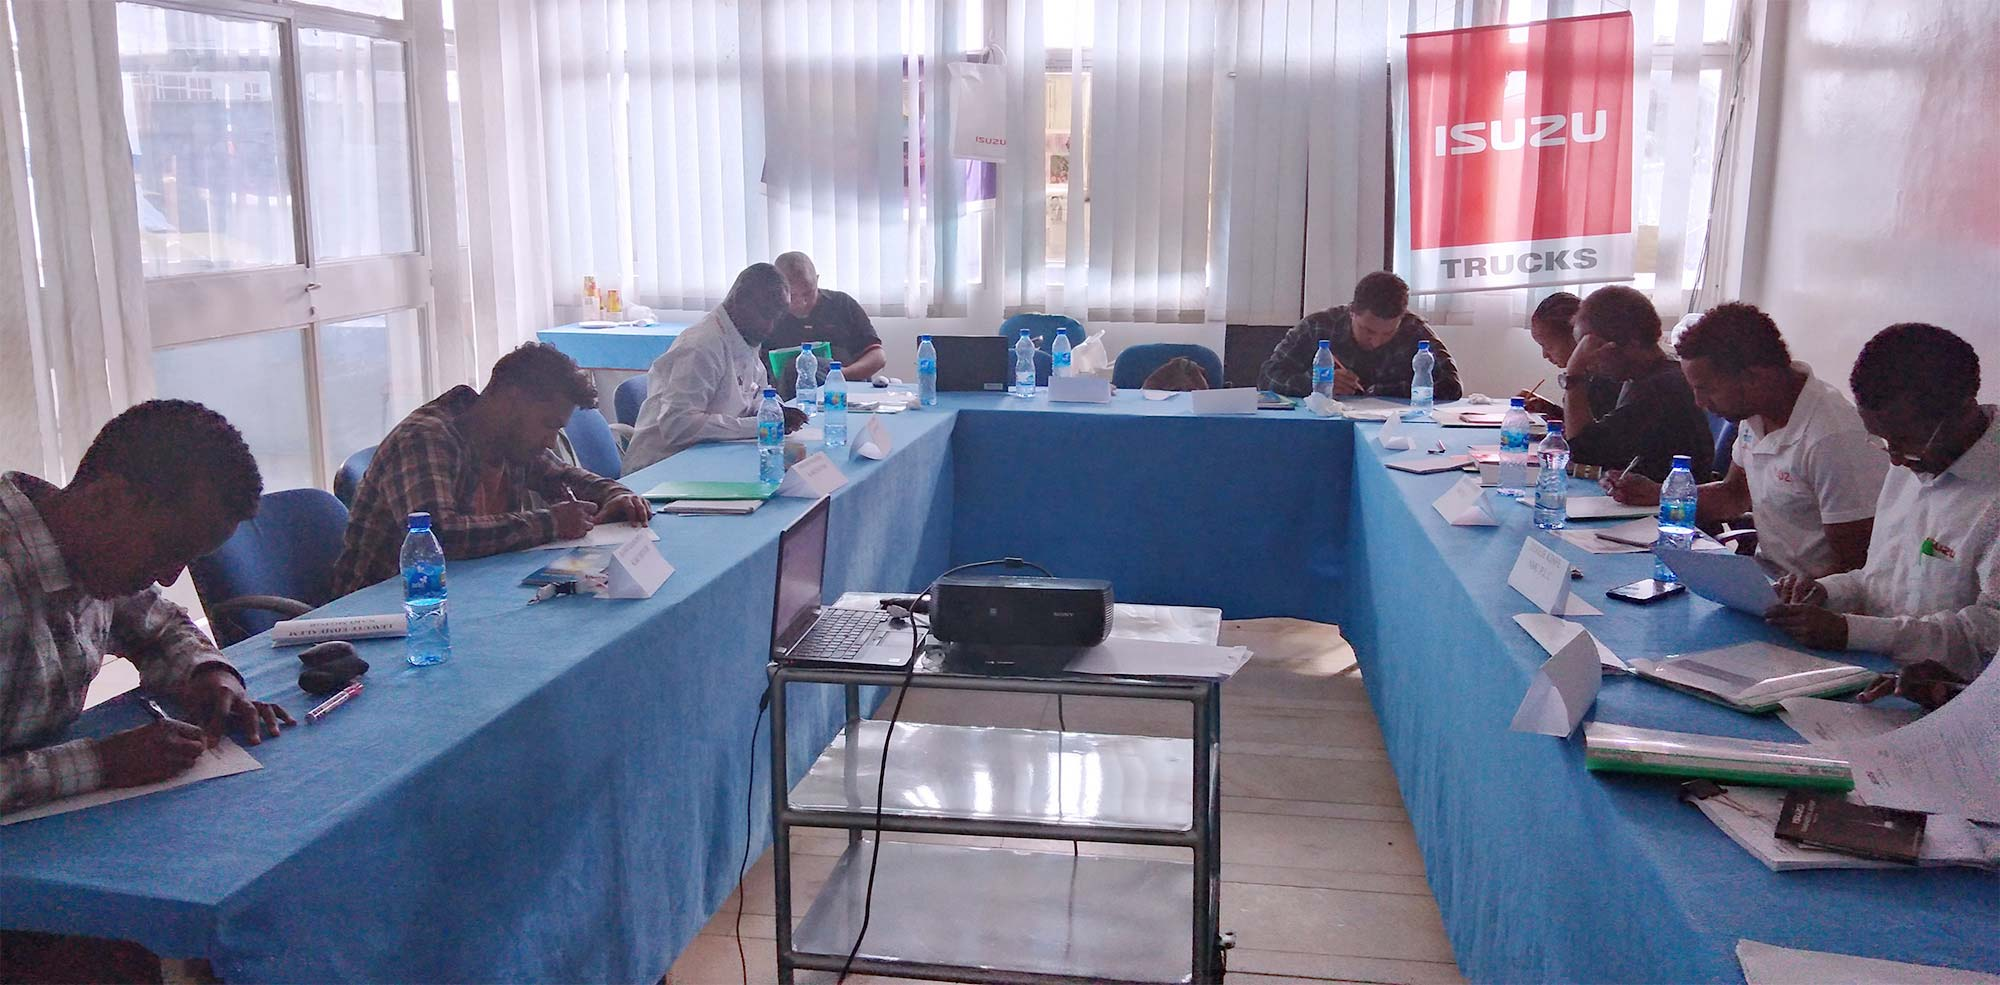 Isuzu Conducted Service Training for East Africa Written Activity